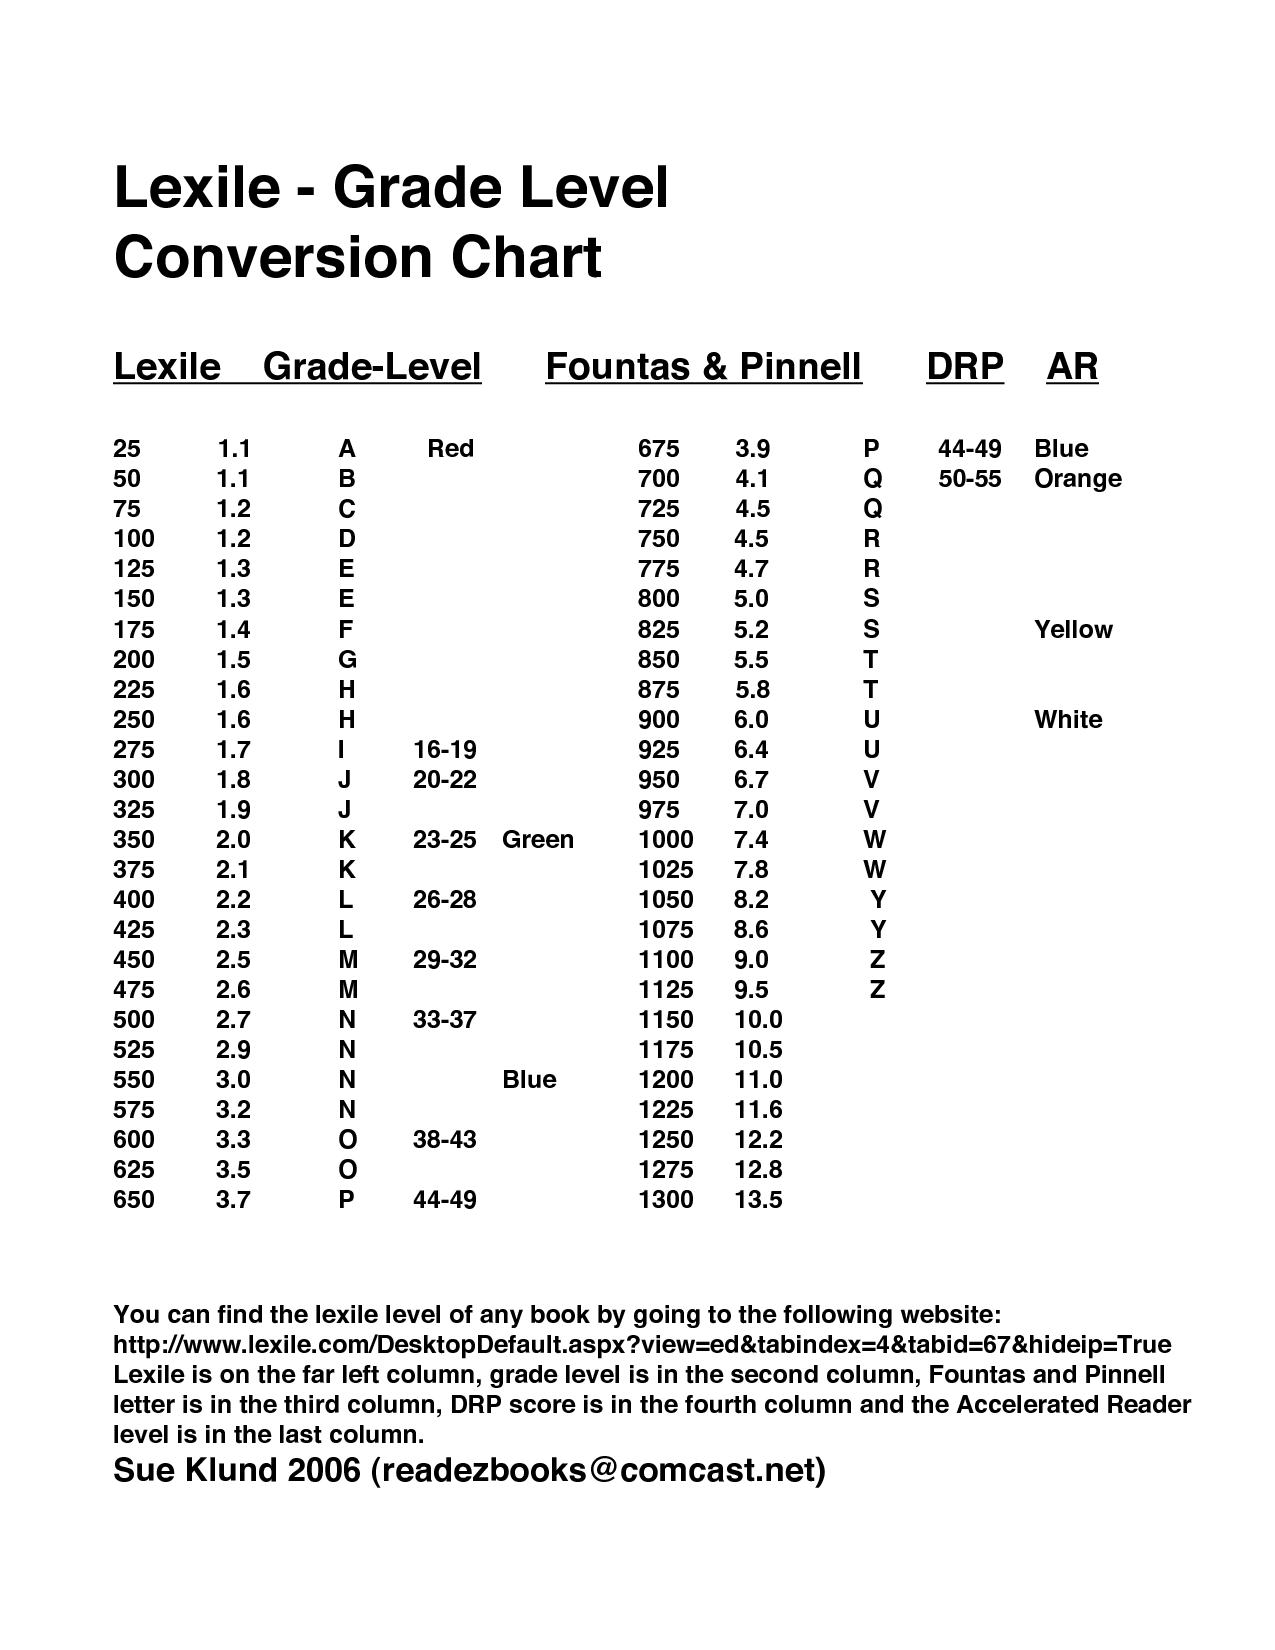 Lexile grade level conversion chart classroom ideas graded reading level and lexile score nvjuhfo Image collections